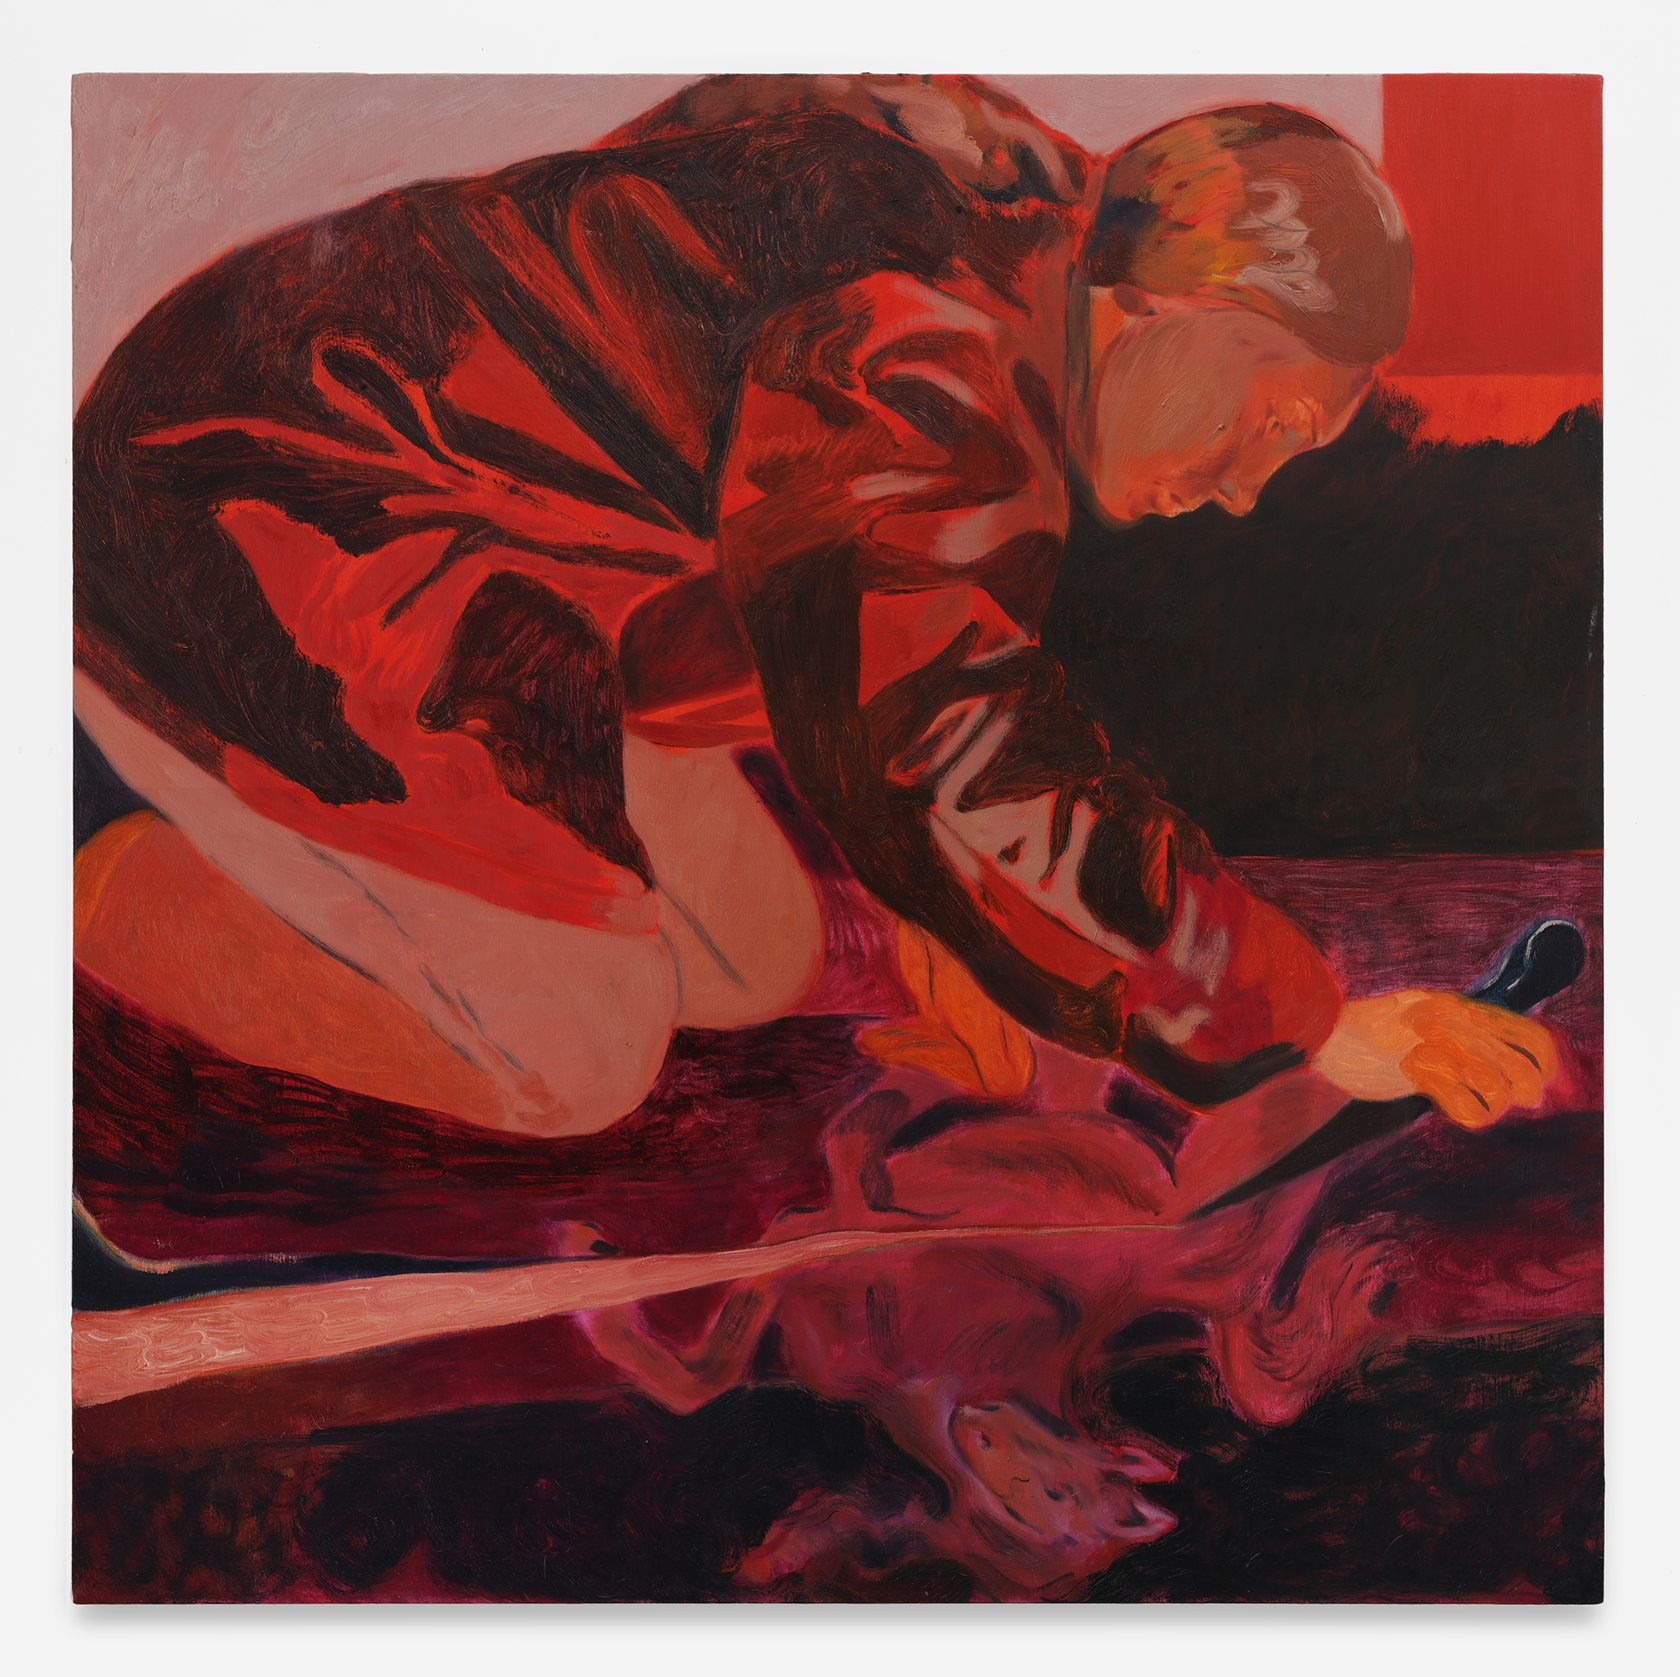 Anthony Cudahy, Cutting terror, 2021 Huile sur toile122 × 122 cm / 48 × 48 in.